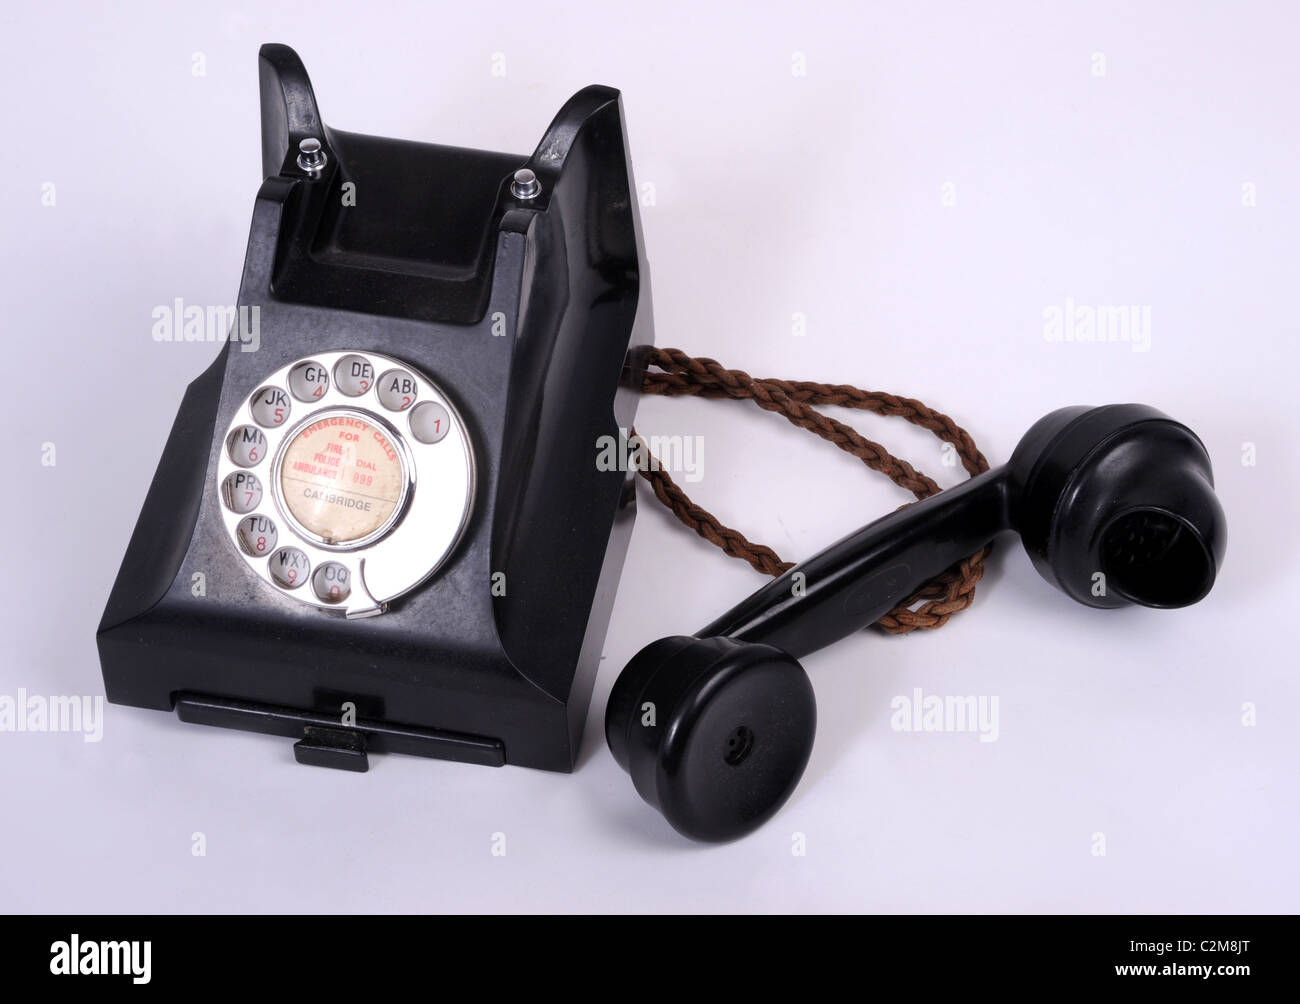 An old dial type 1950s bakelite telephone. - Stock Image